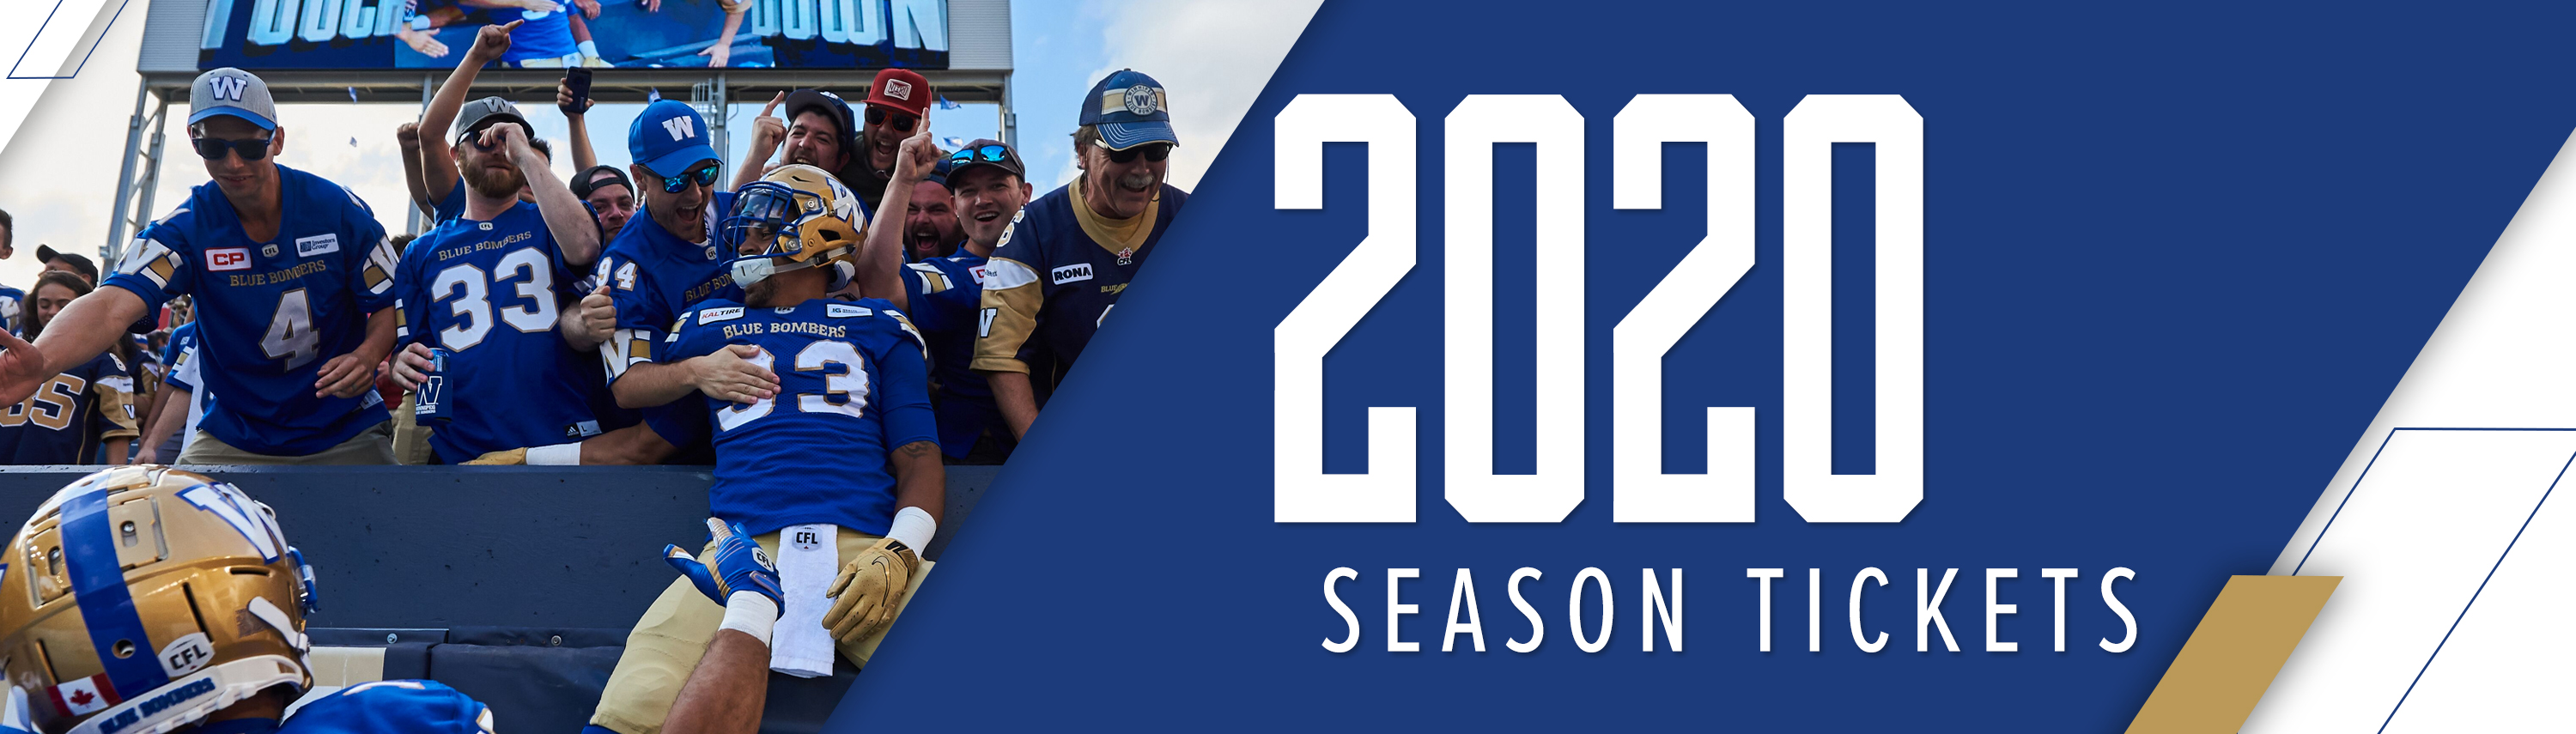 2020 Winnipeg Blue Bombers Season Tickets